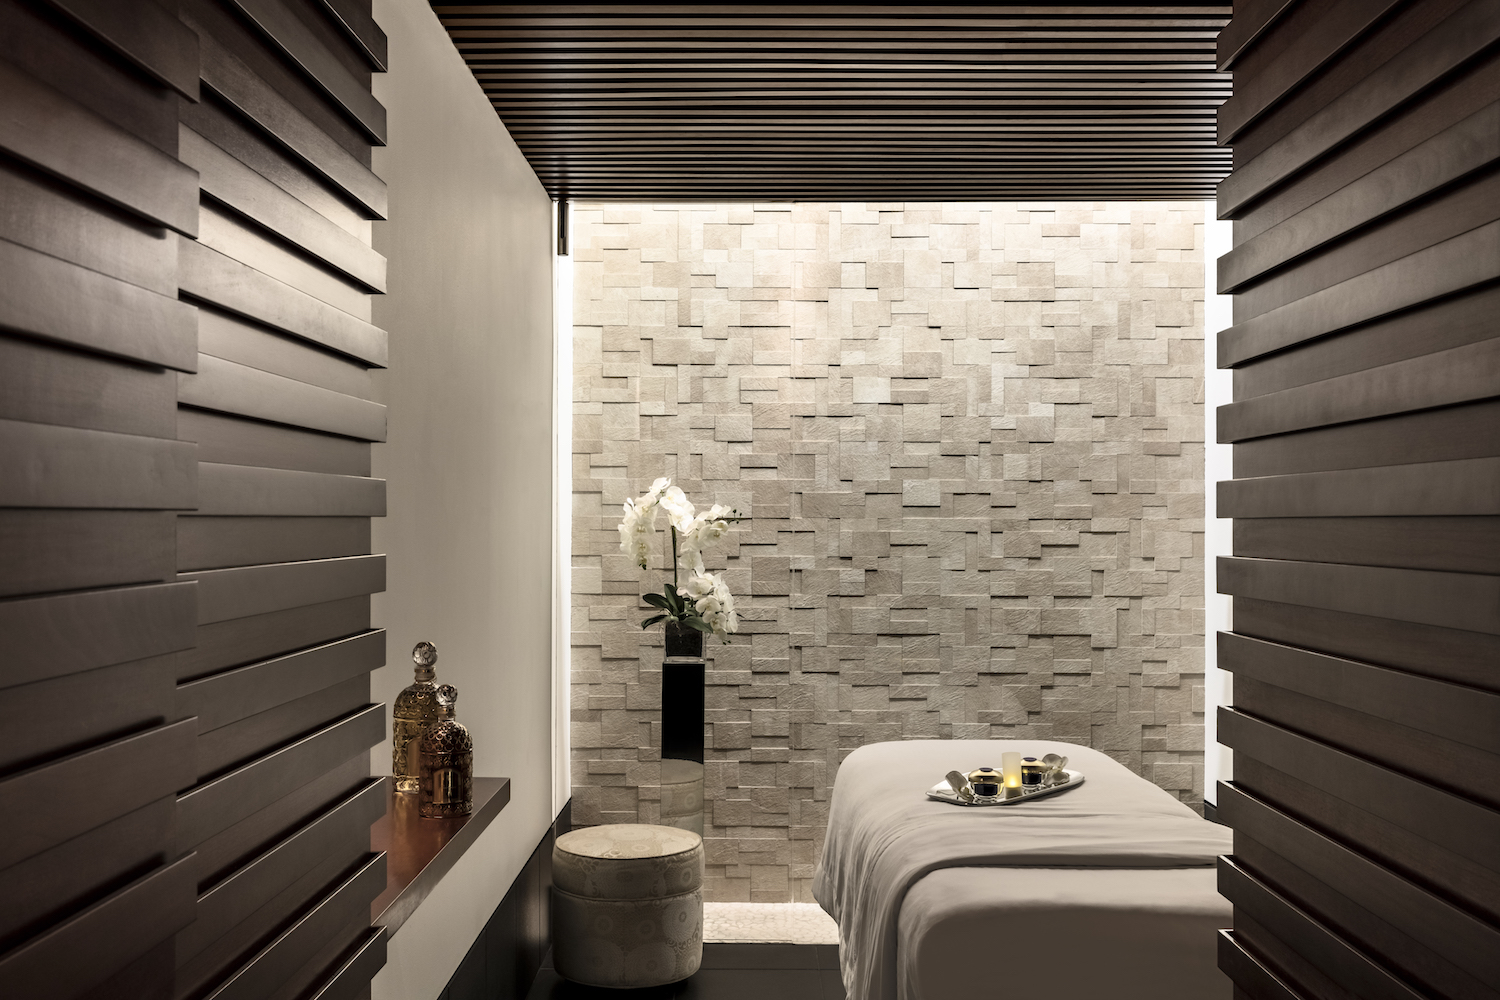 GUERLAIN_Spa_The_Plaza_102-HDR-Edit_FULL-RES